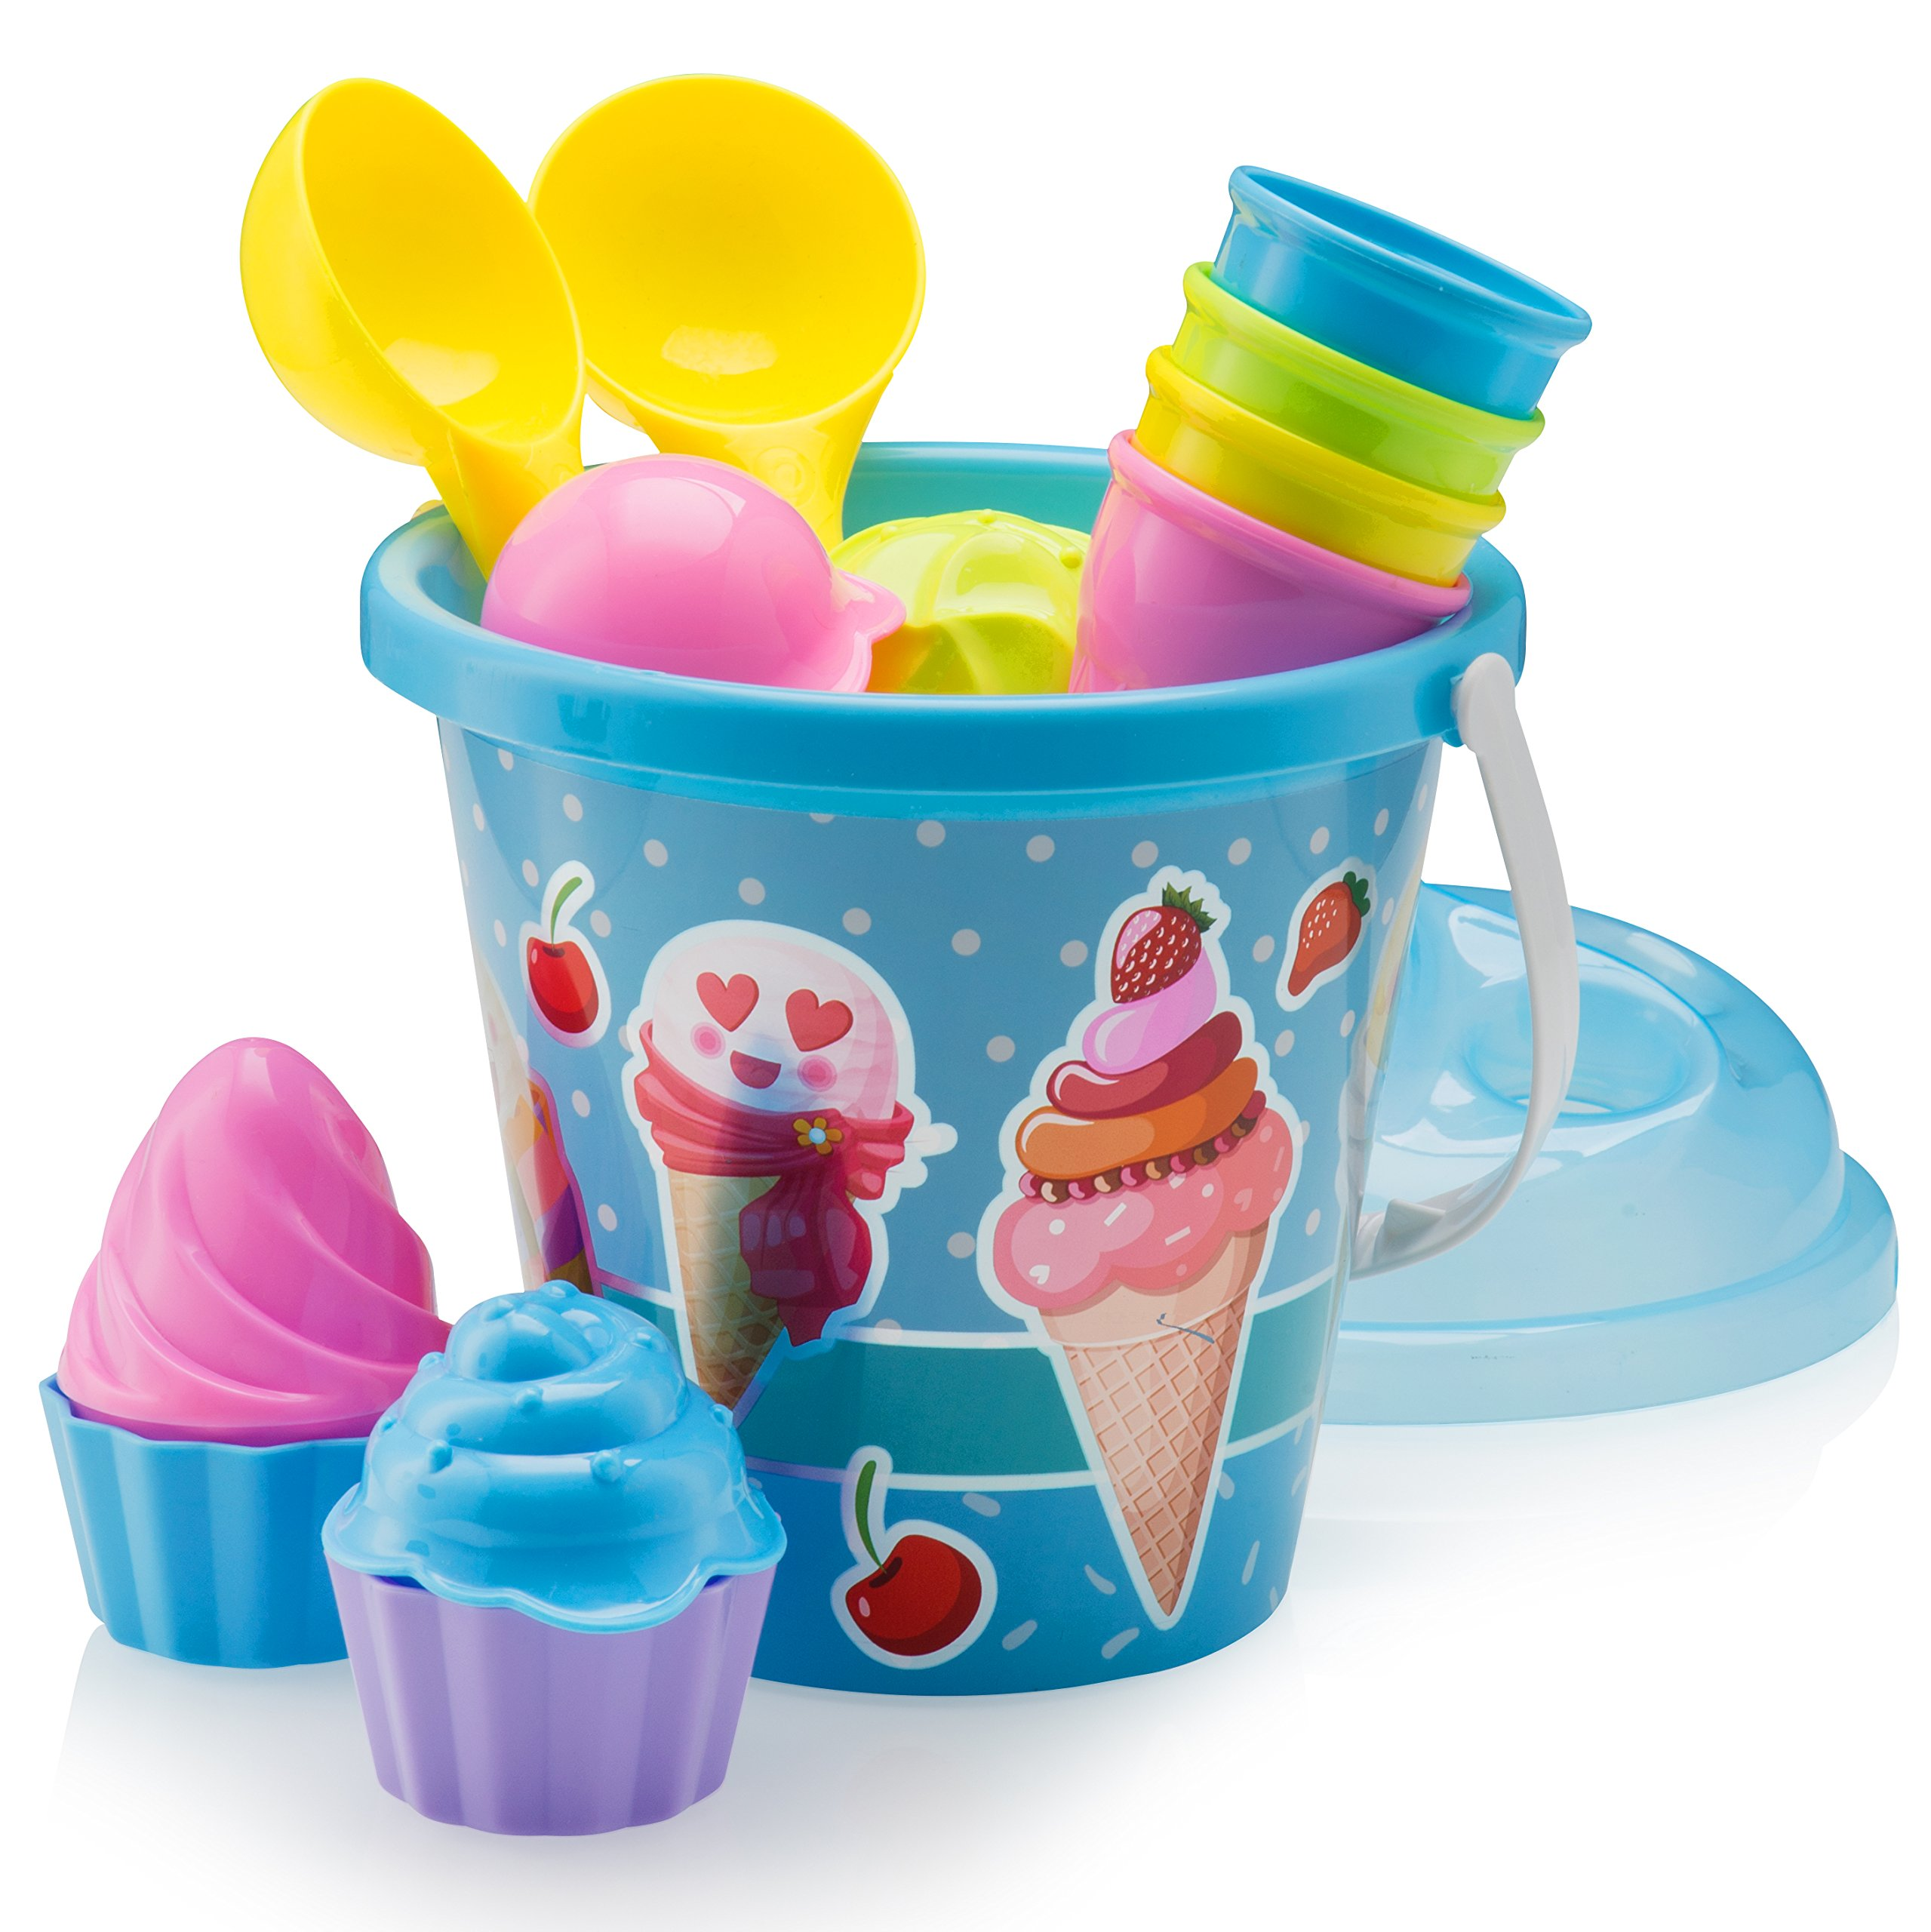 Top Race Beach Toys, Sand Toys, 16 Piece Ice Cream Mold Set for Kids 3-10 with Large 9'' Beach Toy Bucket Pail for Kids and Toddlers (Blue) by Top Race